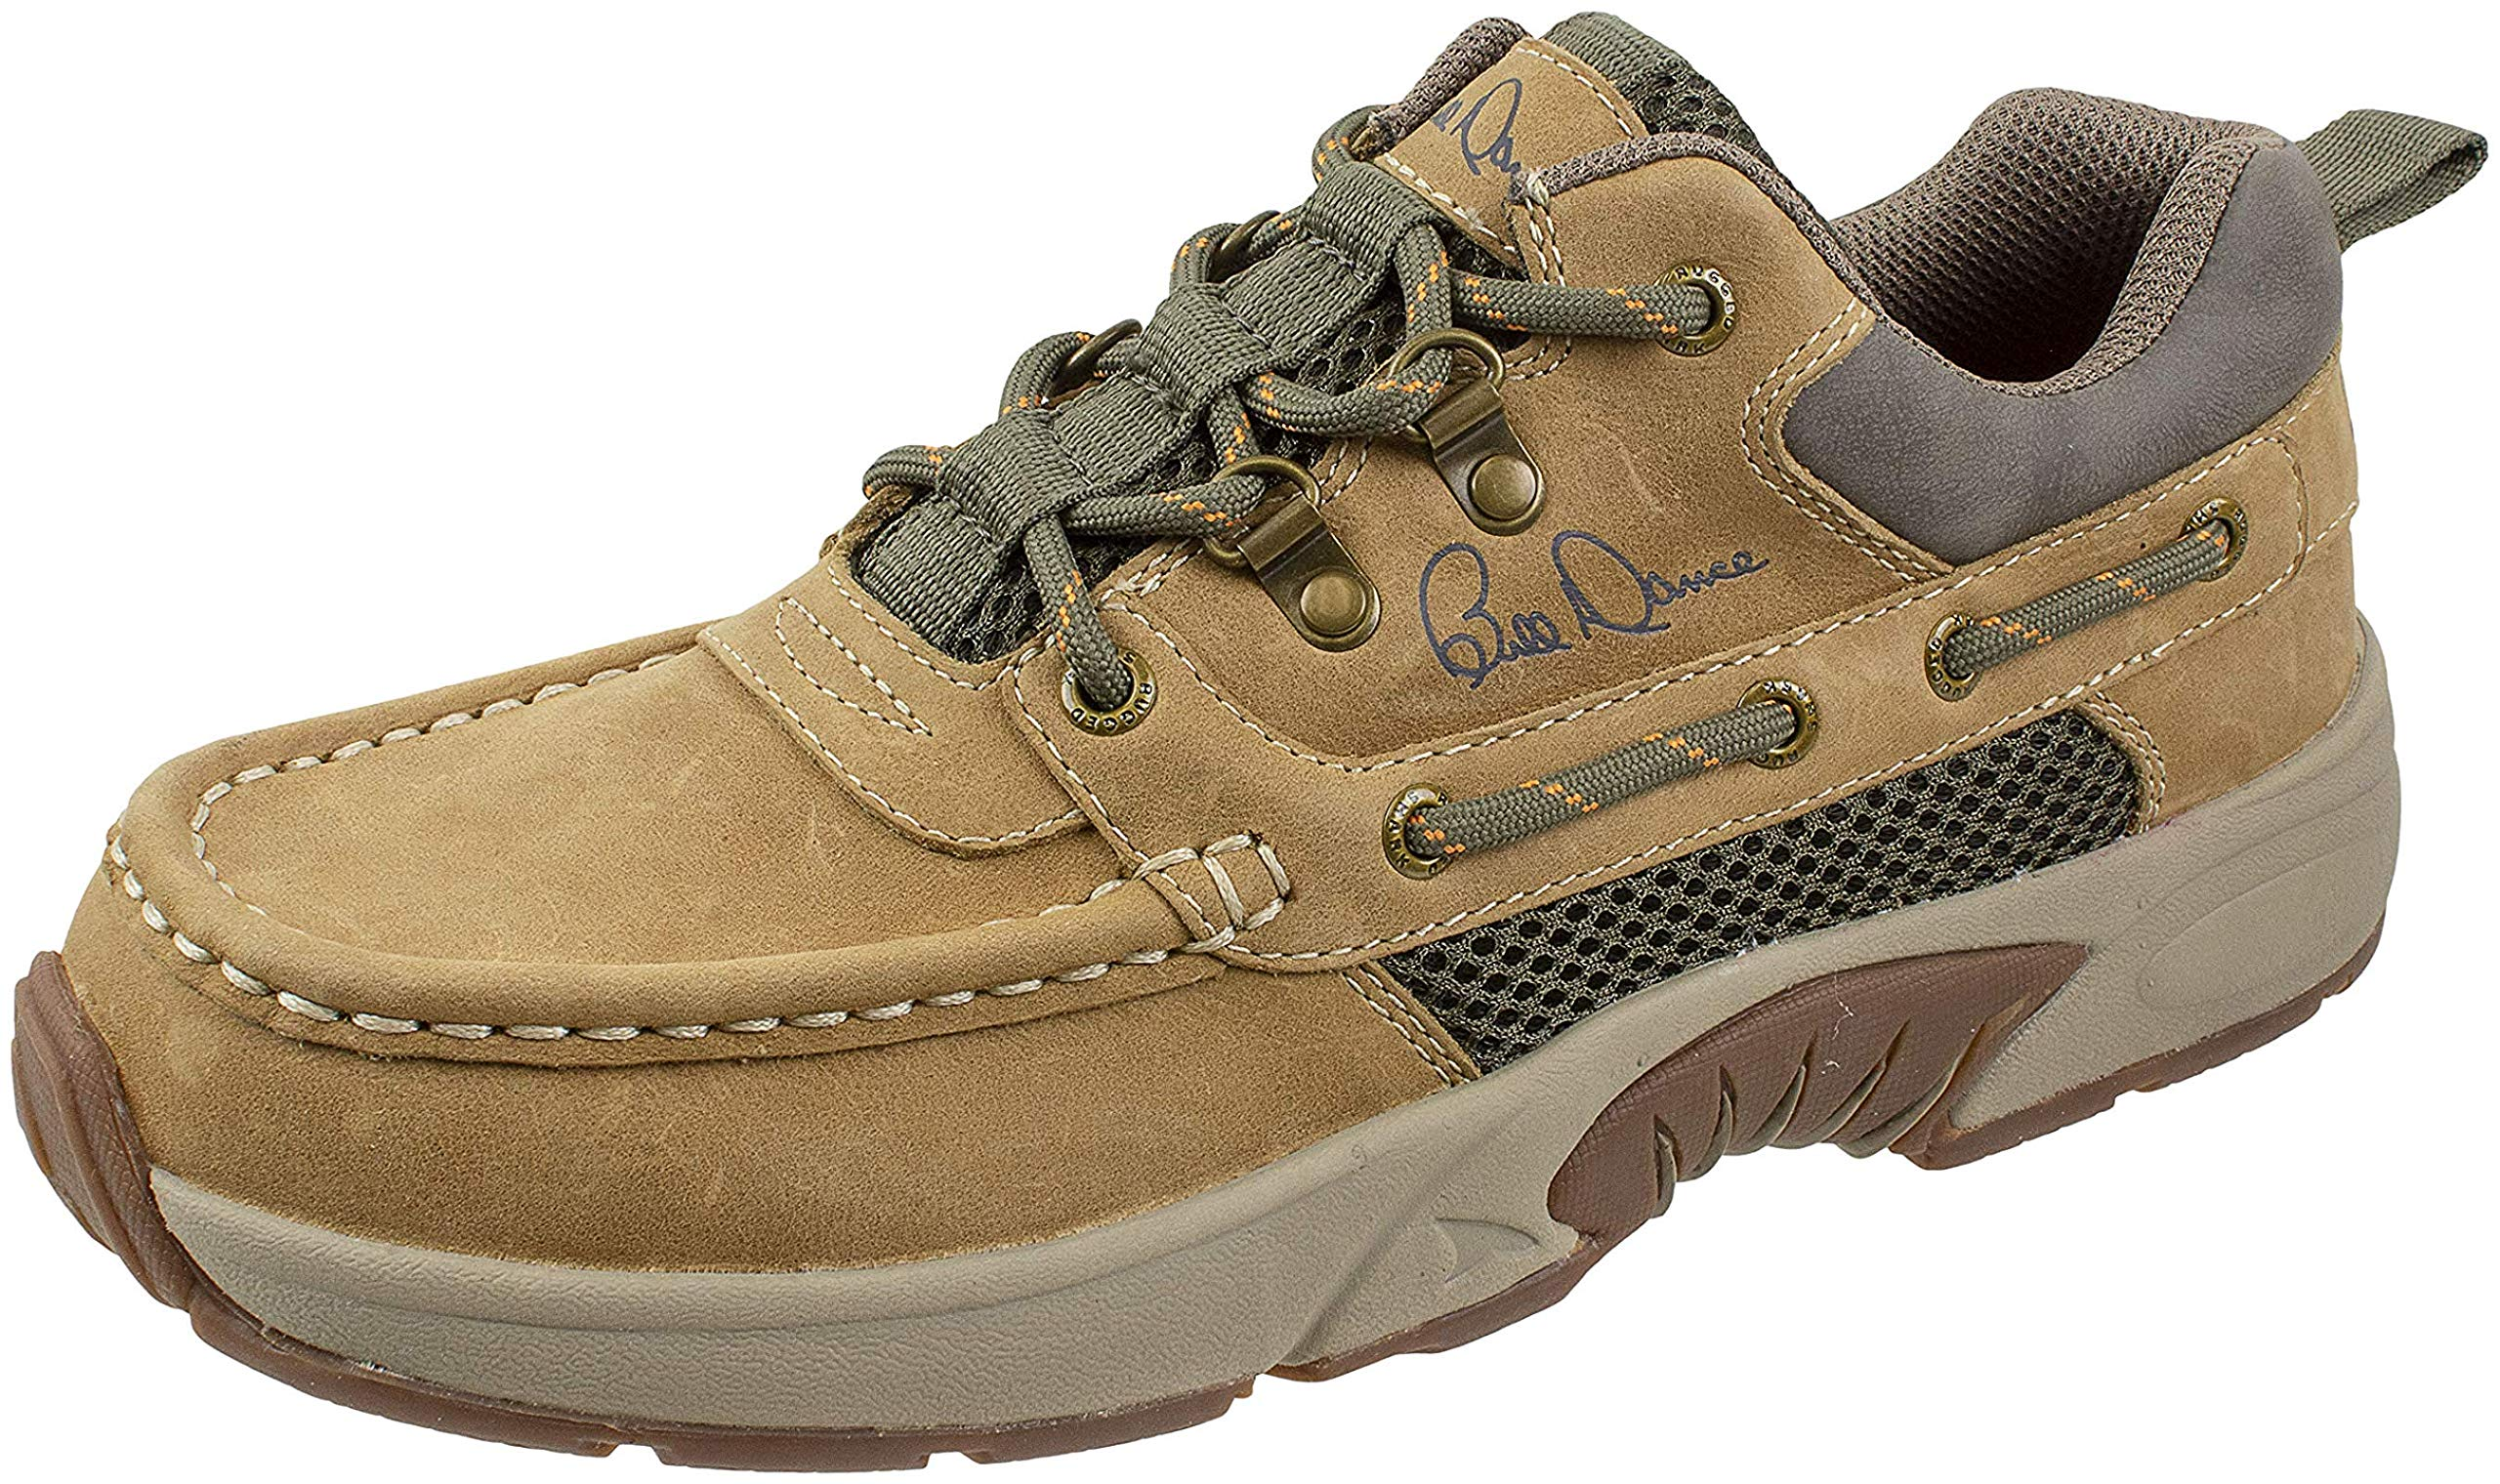 Rugged Shark Bill Dance Pro Boat Shoe, Premium Leather and Comfort, Fishing and Outdoor Shoe, Tan, Men's Size 10 by Rugged Shark